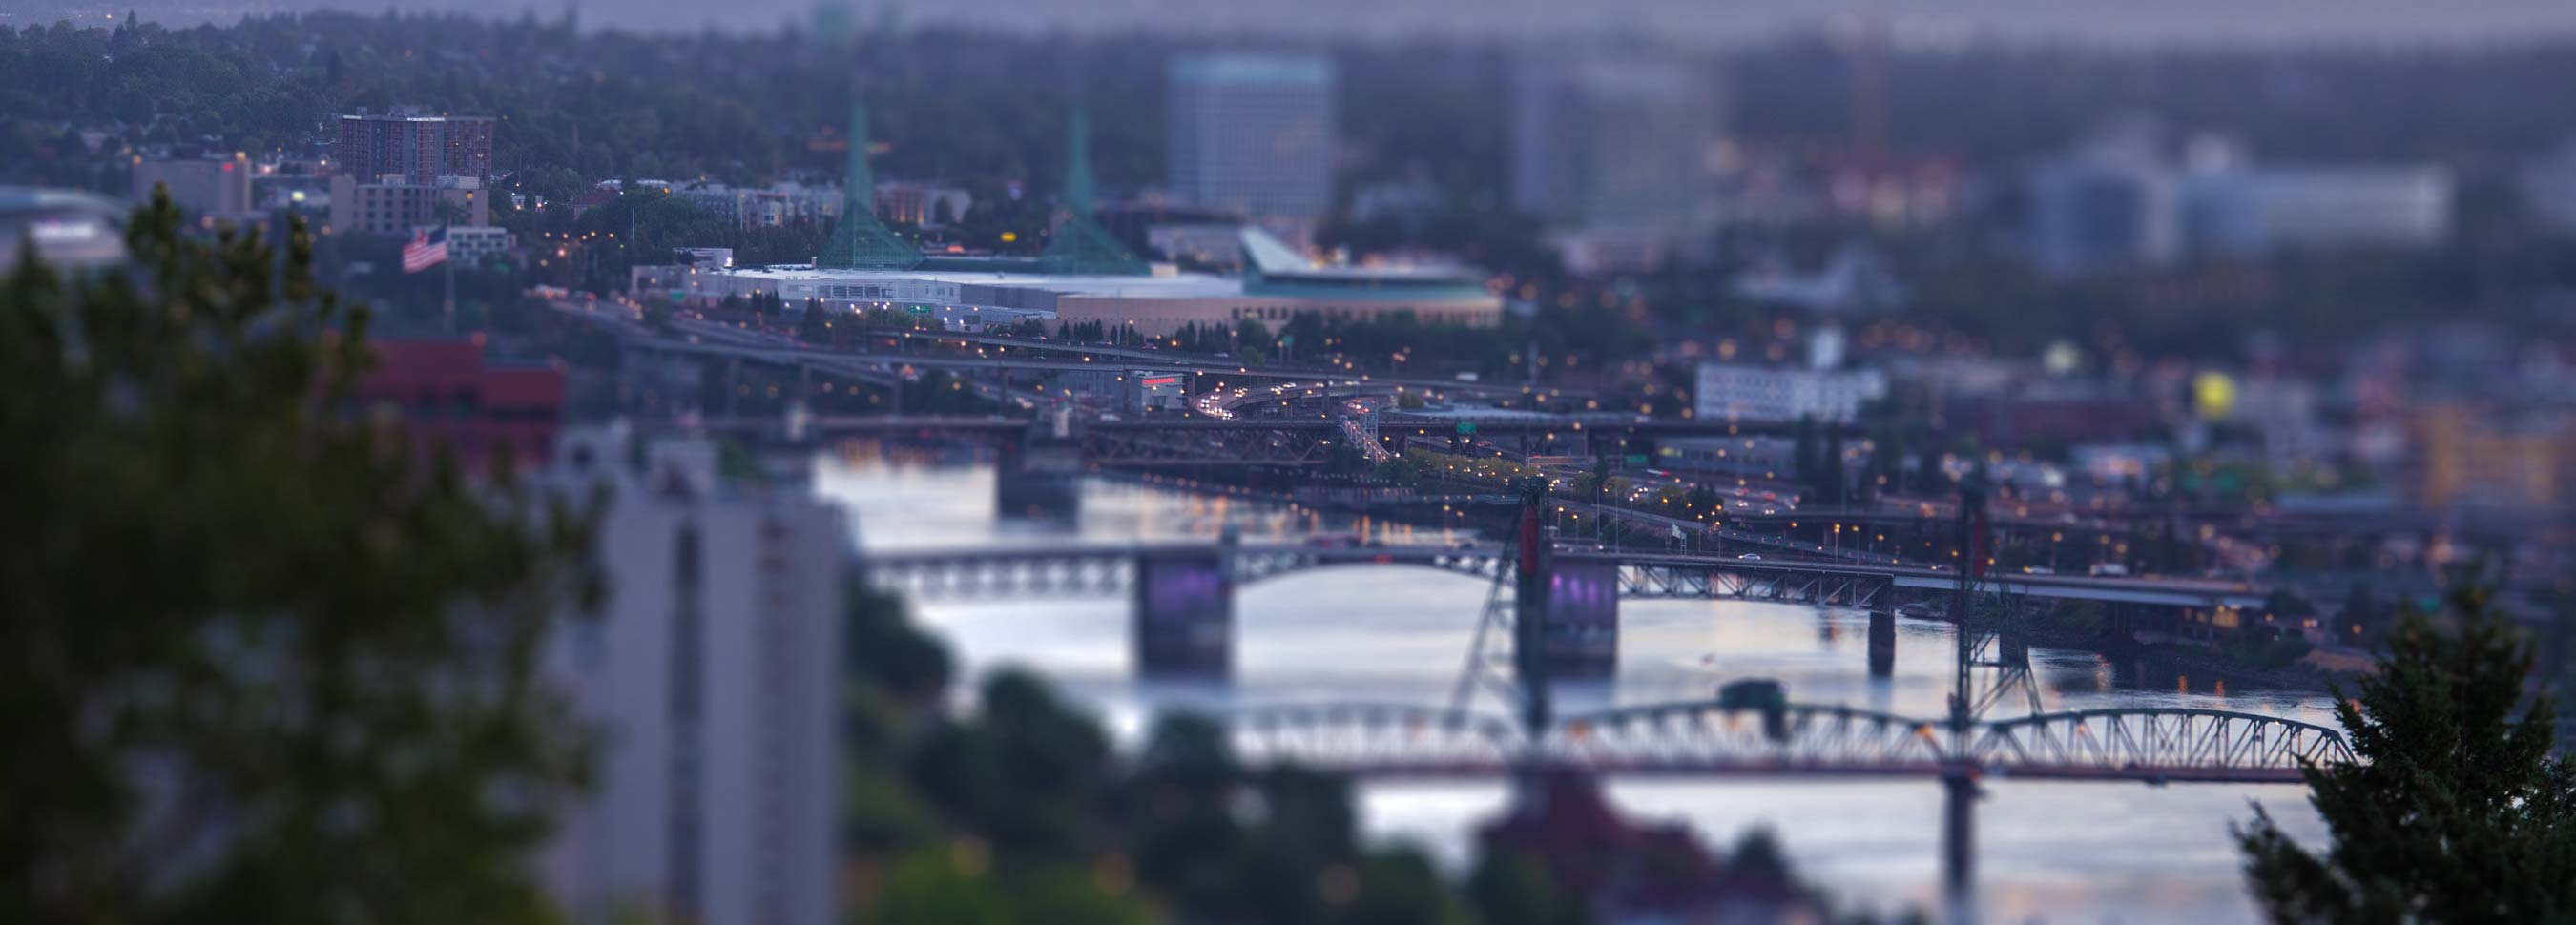 portland-skyline-bridges